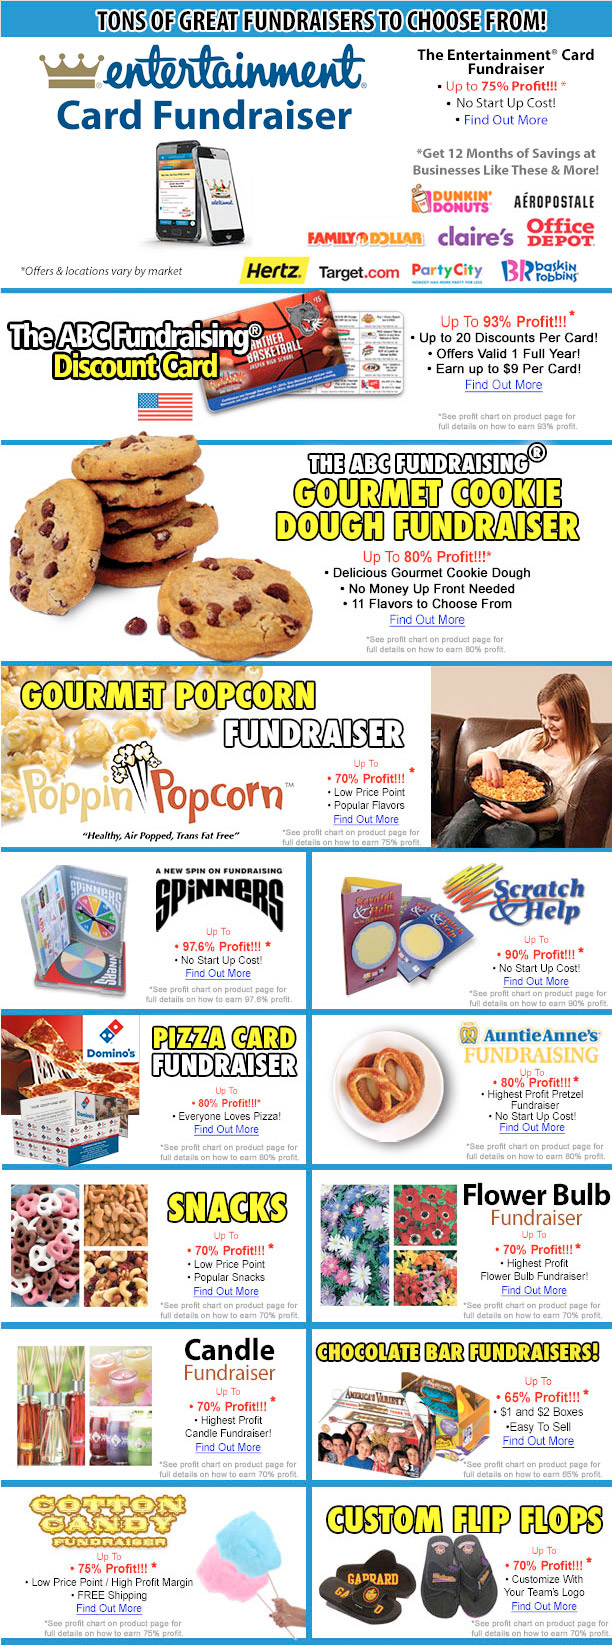 Tons of great fundraisers